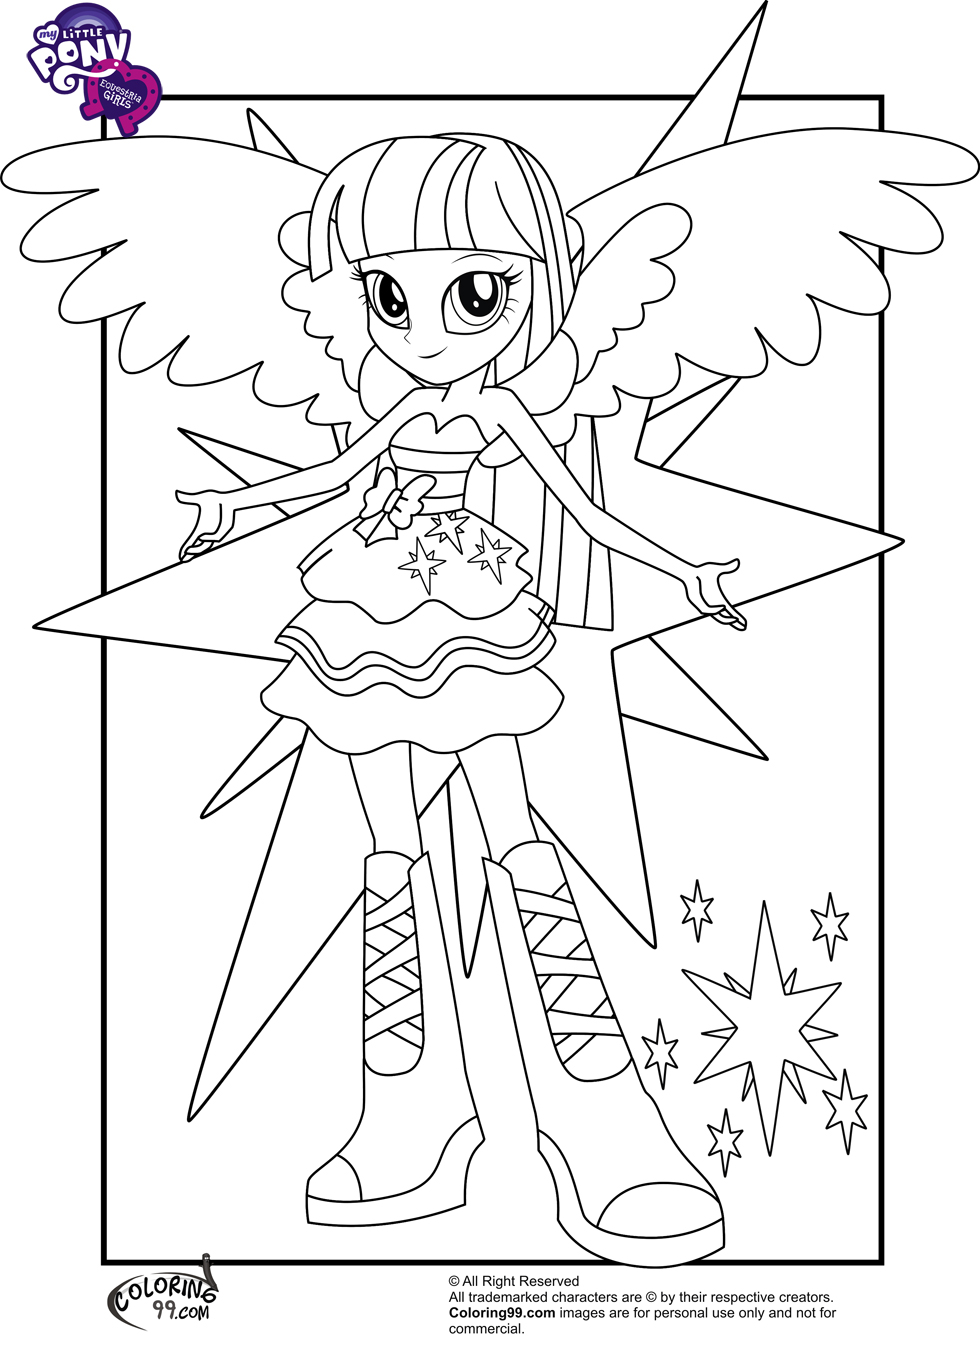 My little pony equestria girls friendship games coloring pages ~ My Little Pony Equestria Girls Coloring Pages | Minister ...